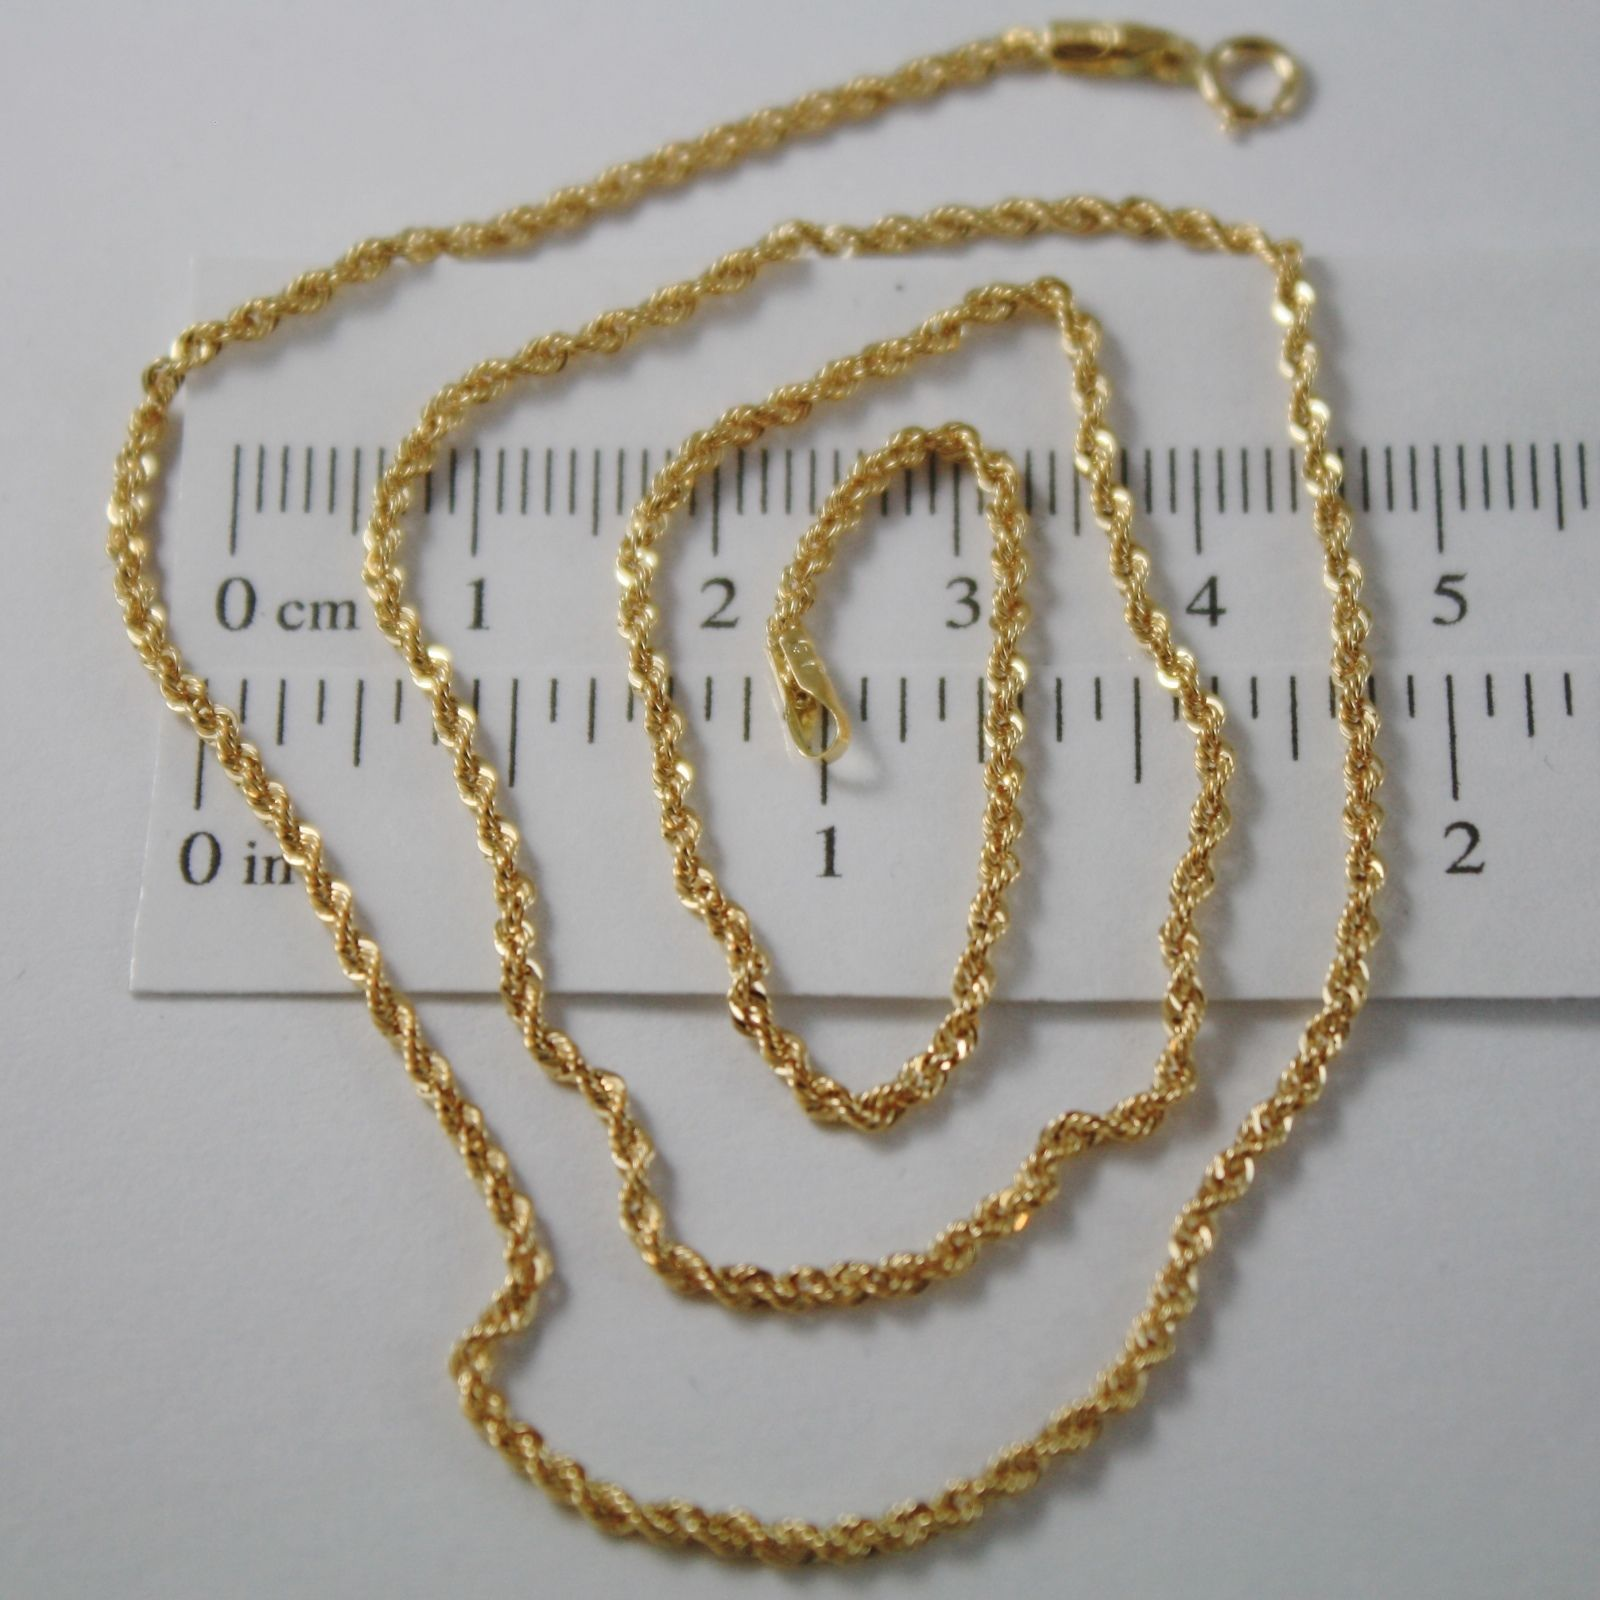 18K YELLOW GOLD CHAIN NECKLACE, BRAID ROPE LINK 28 INCHES, 70 CM, MADE IN ITALY